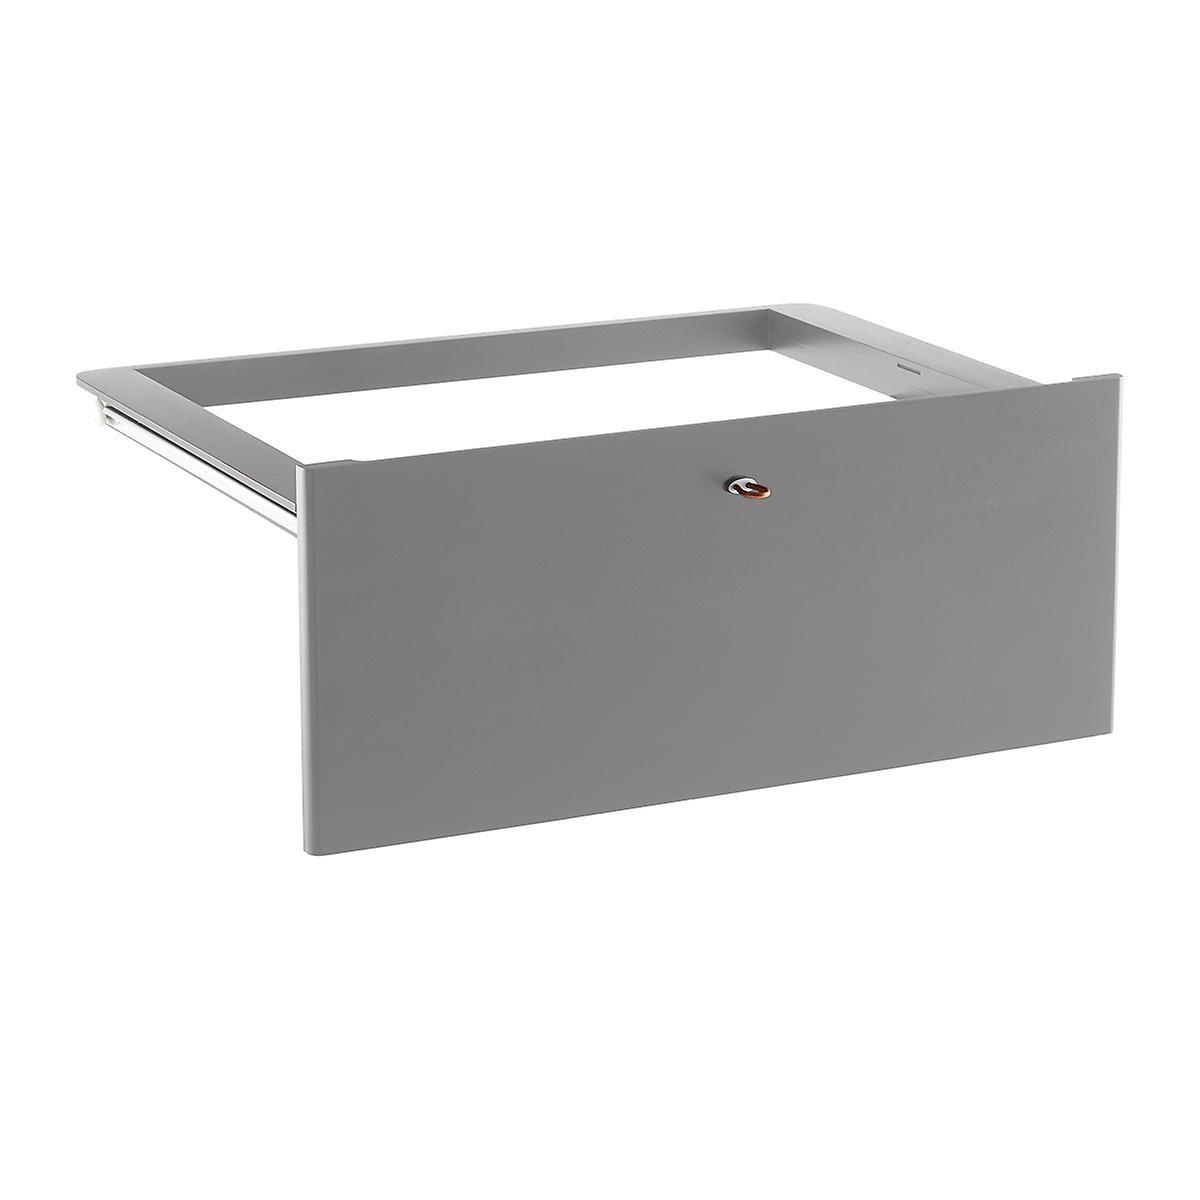 Grey Elfa Décor Drawer Frames & Fronts